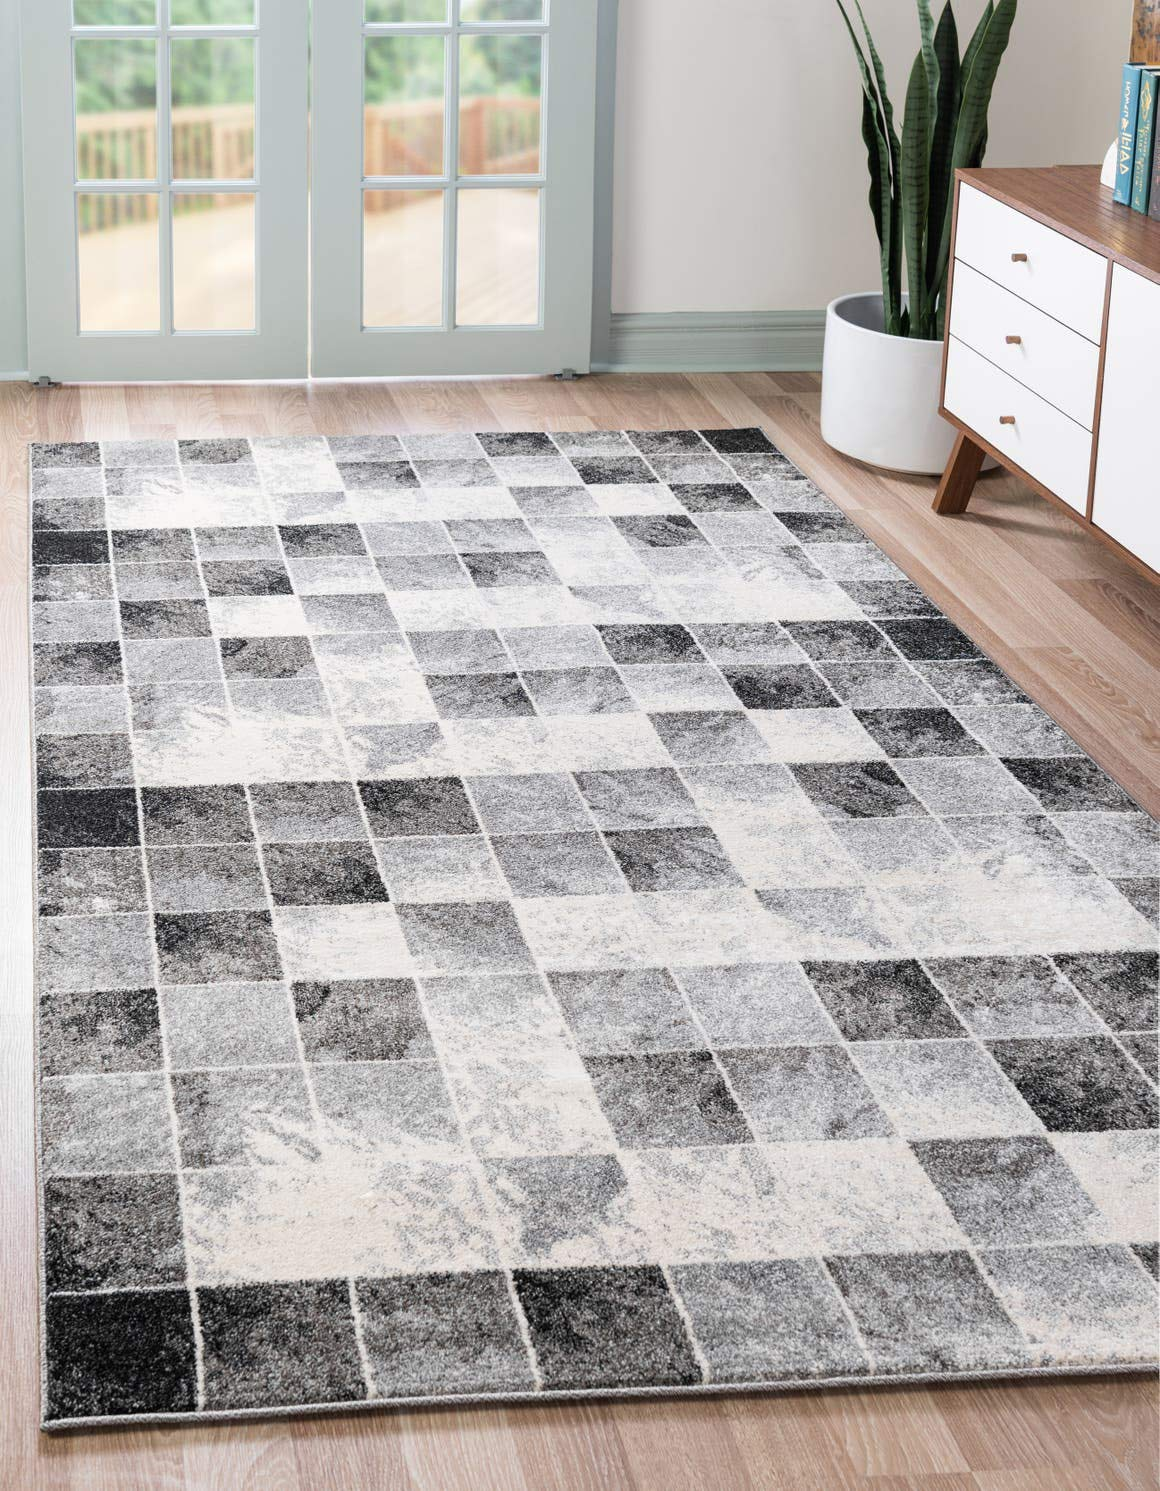 Unique Loom Wildlife Collection Checkered Geometric Warm Colors Light Gray Area Rug 5 0 x 8 0